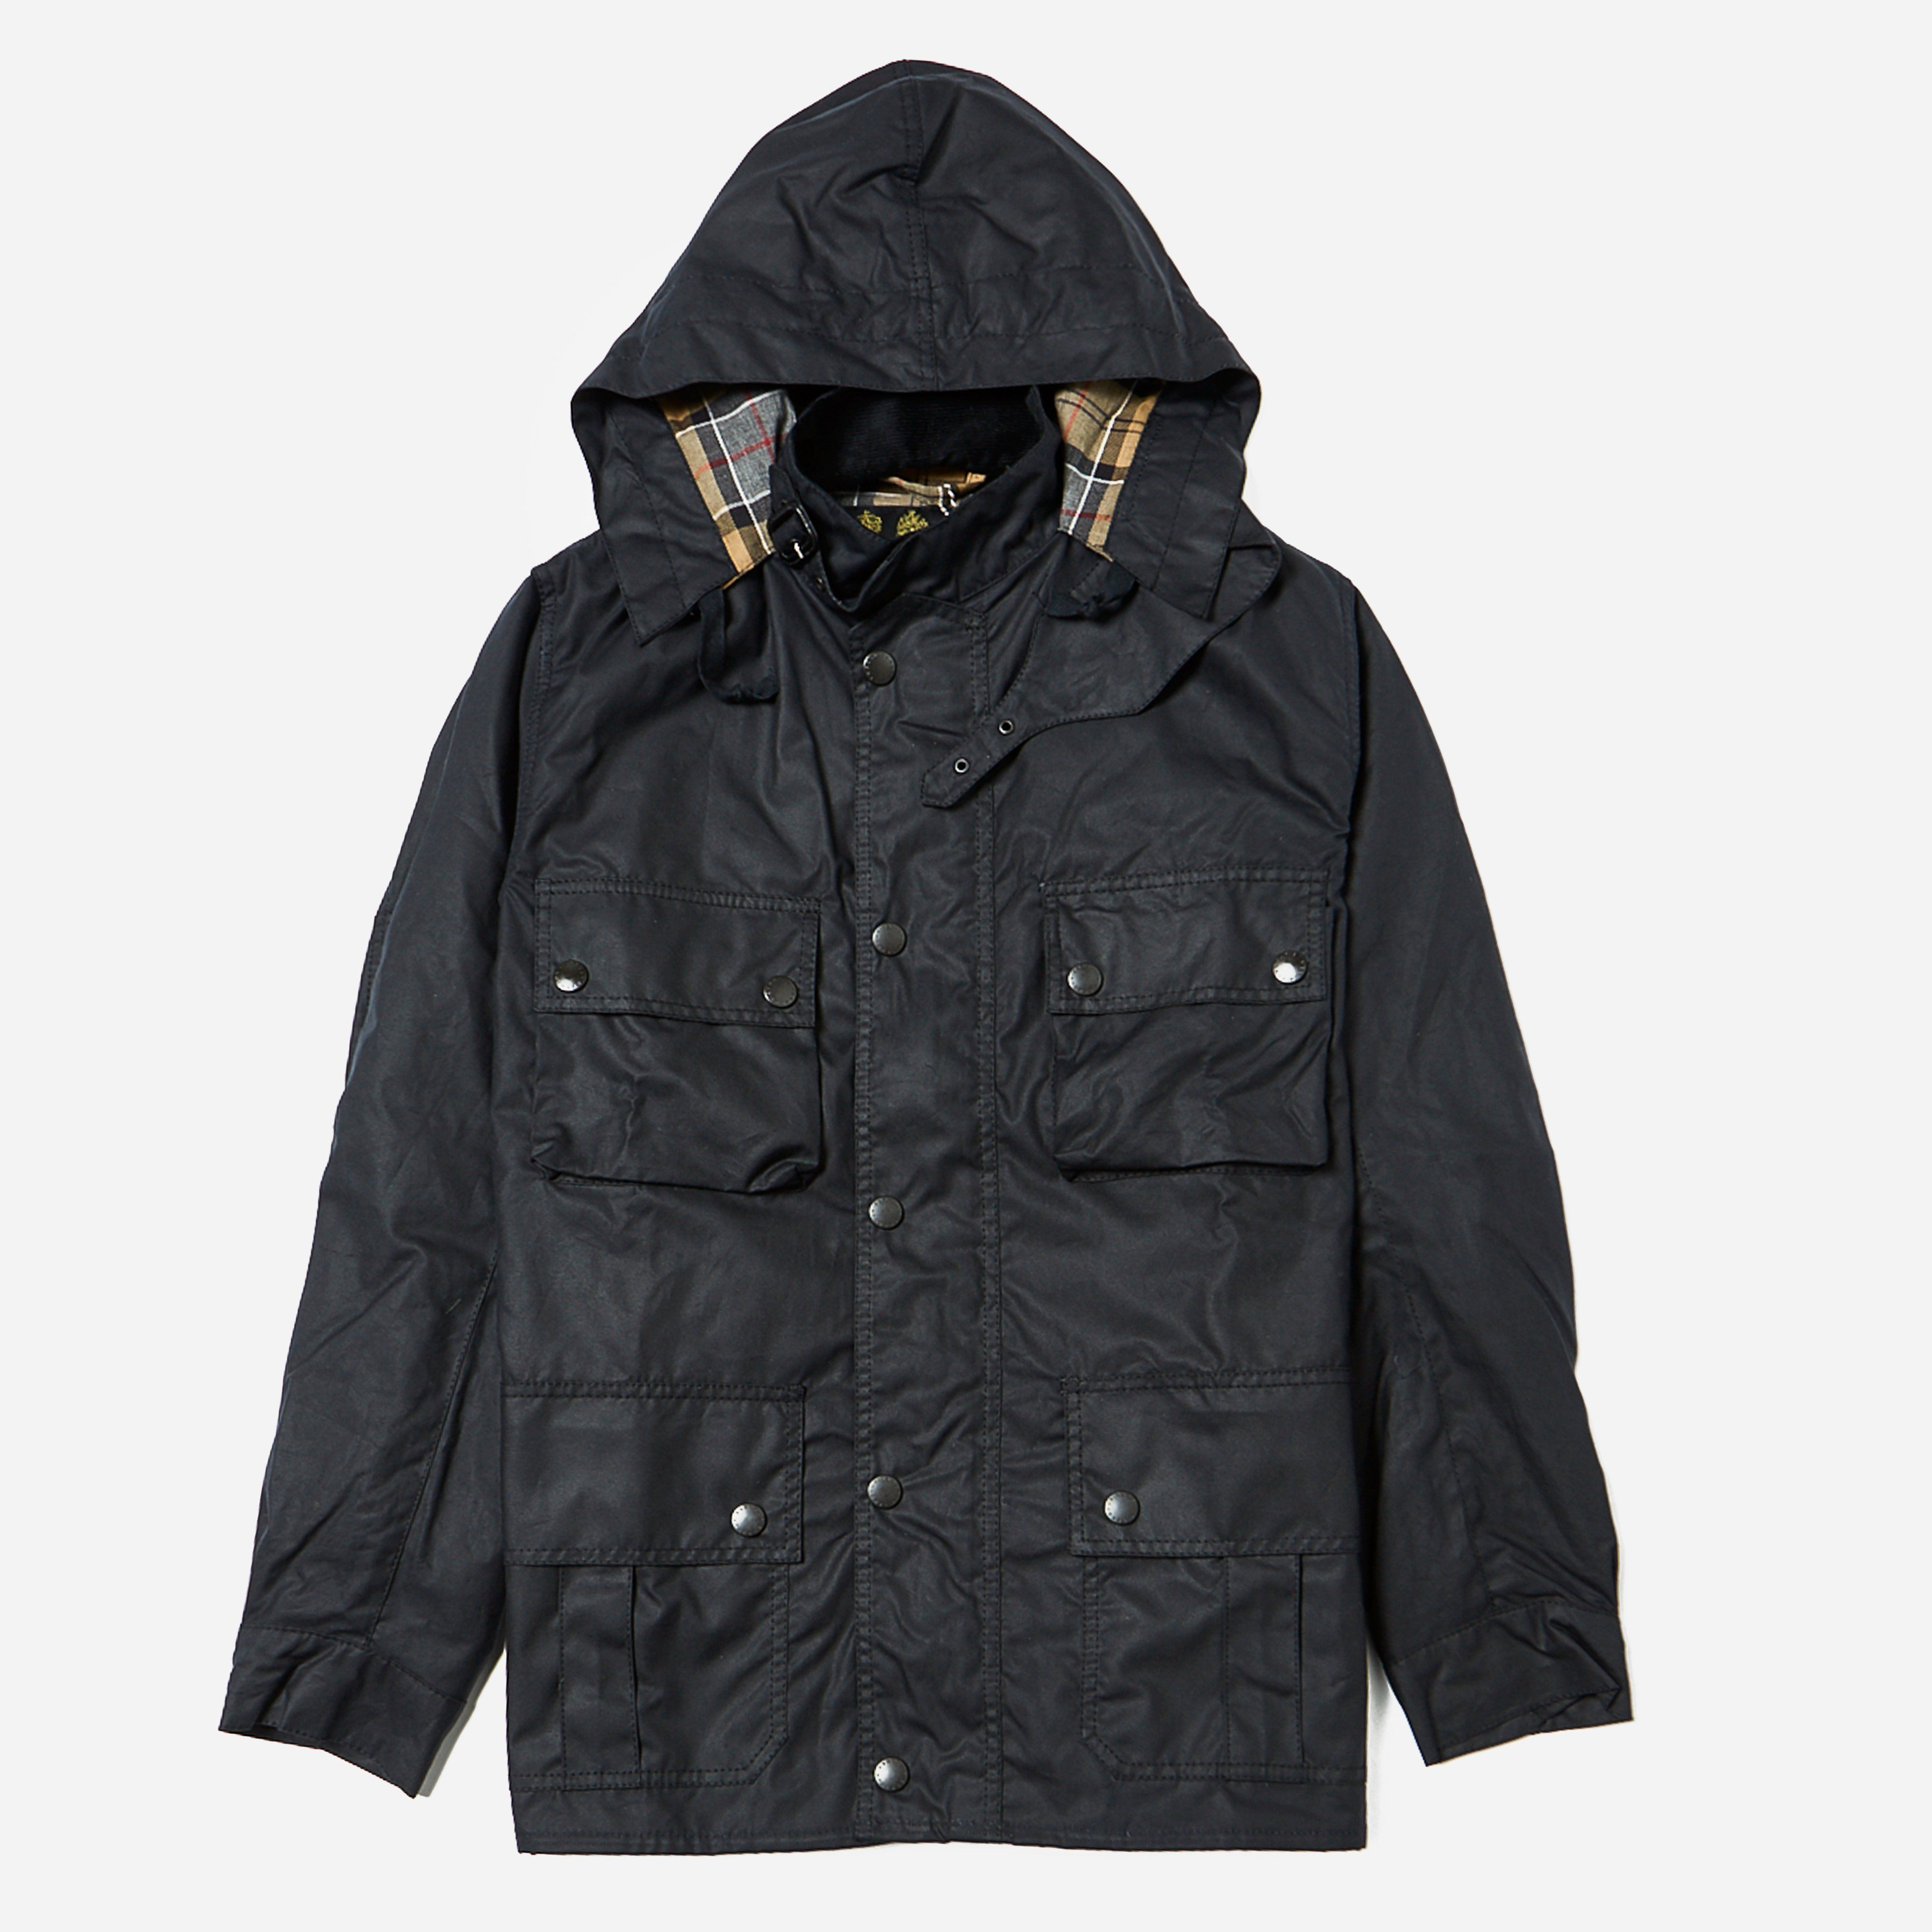 Barbour Made for Japan Ursula Wax Jacket